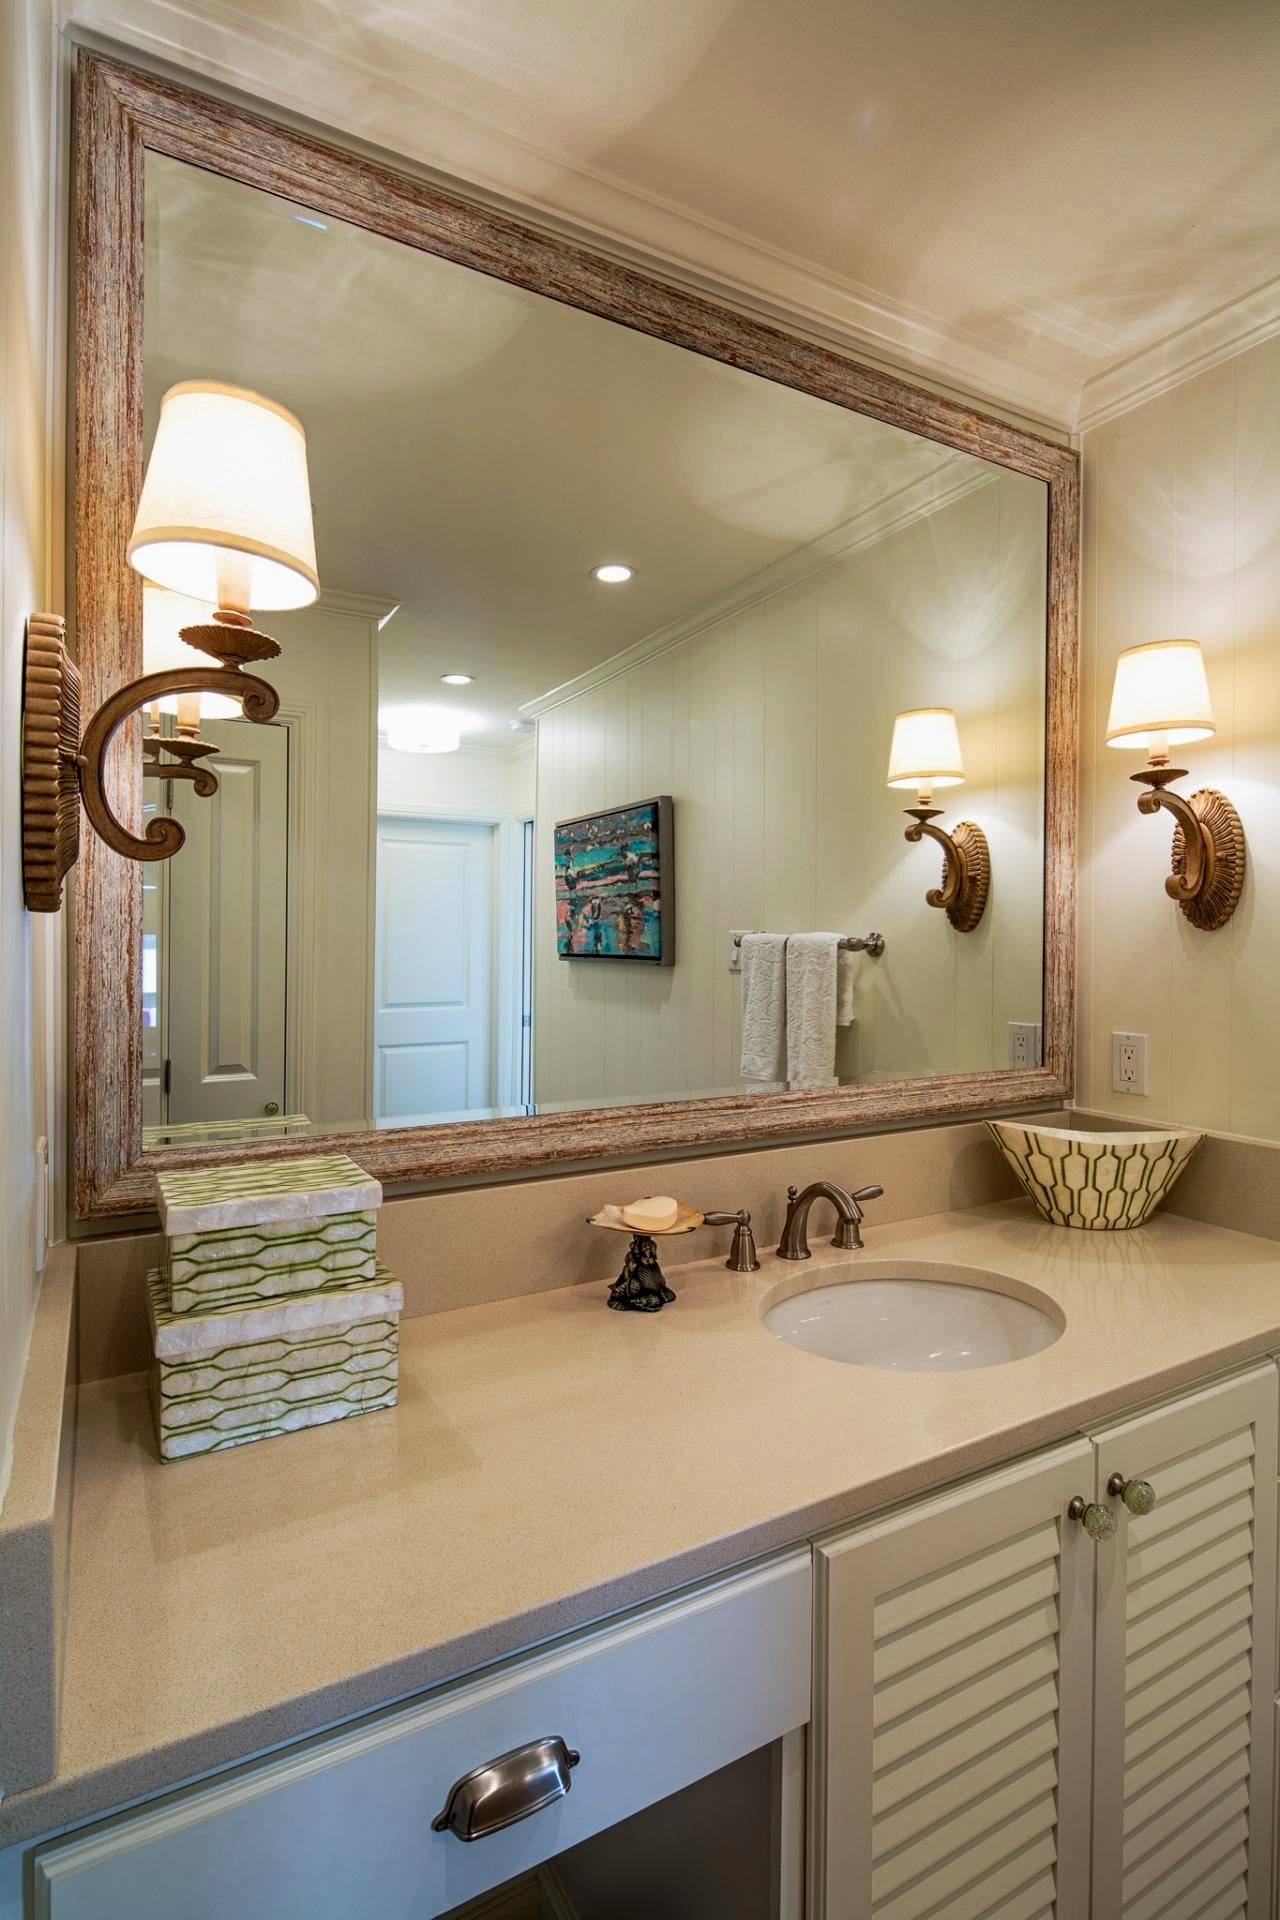 contemporary old fashioned bathroom faucets decoration-Top Old Fashioned Bathroom Faucets Décor